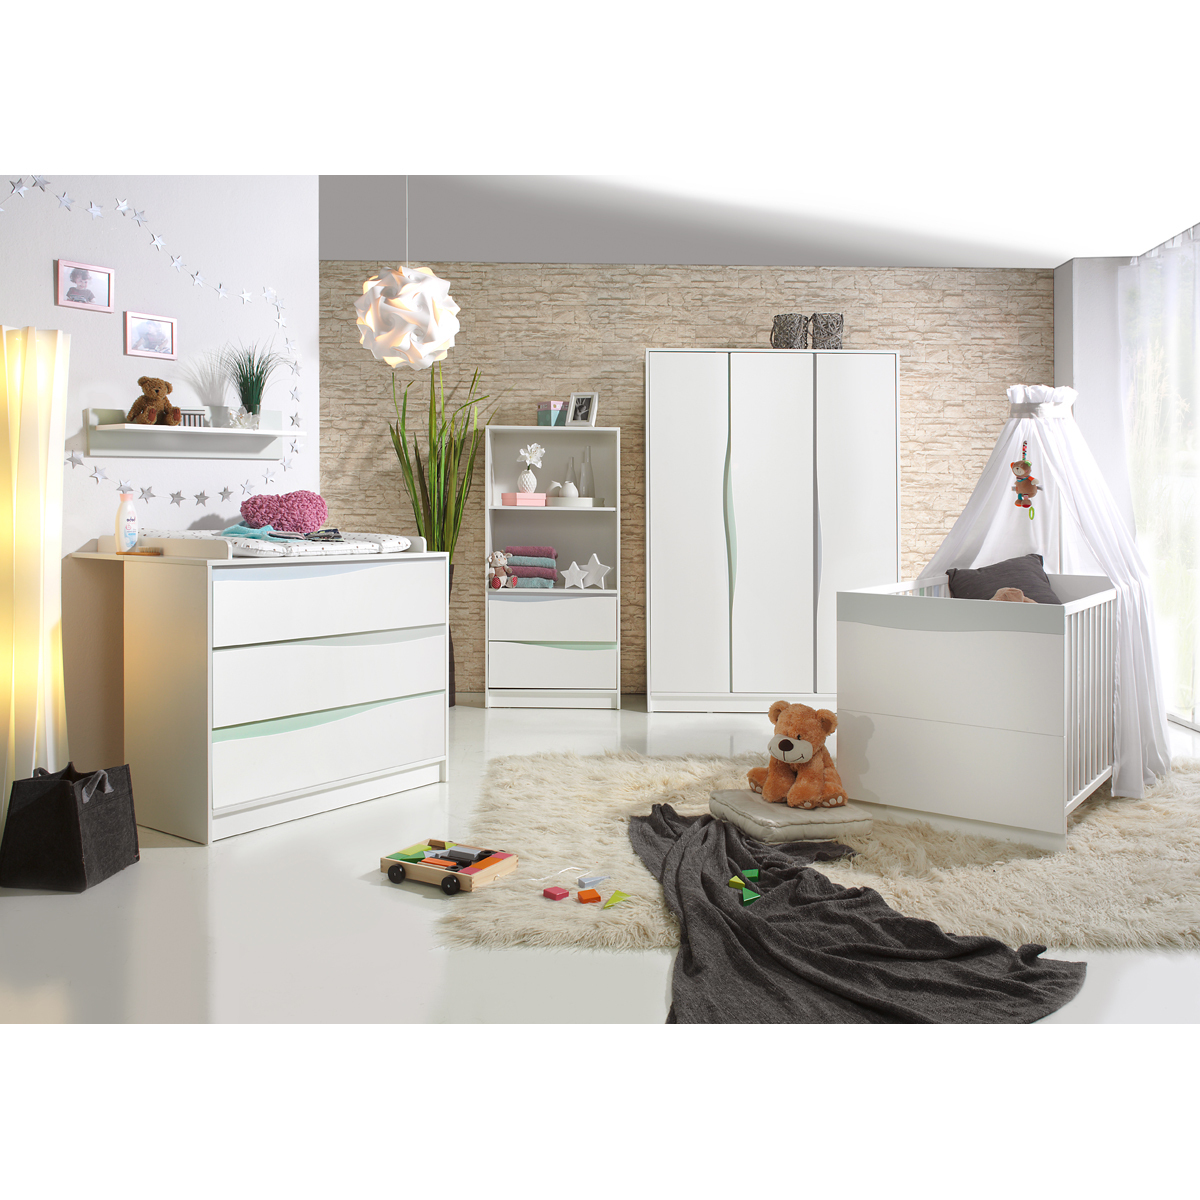 Geuther chambre trio lit commode etag re haute for Chambre haute